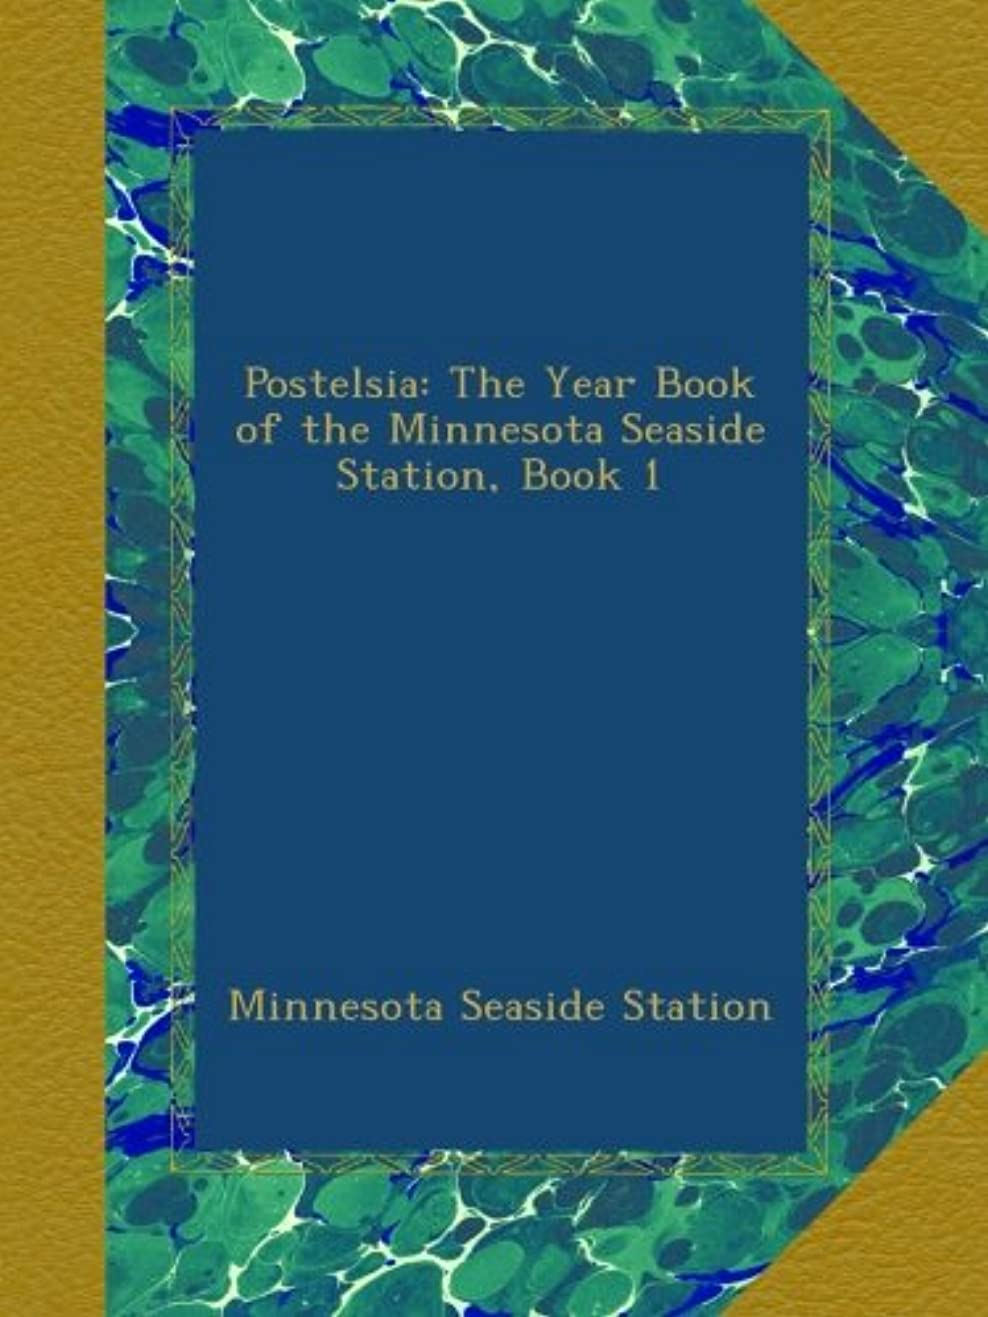 Postelsia: The Year Book of the Minnesota Seaside Station, Book 1